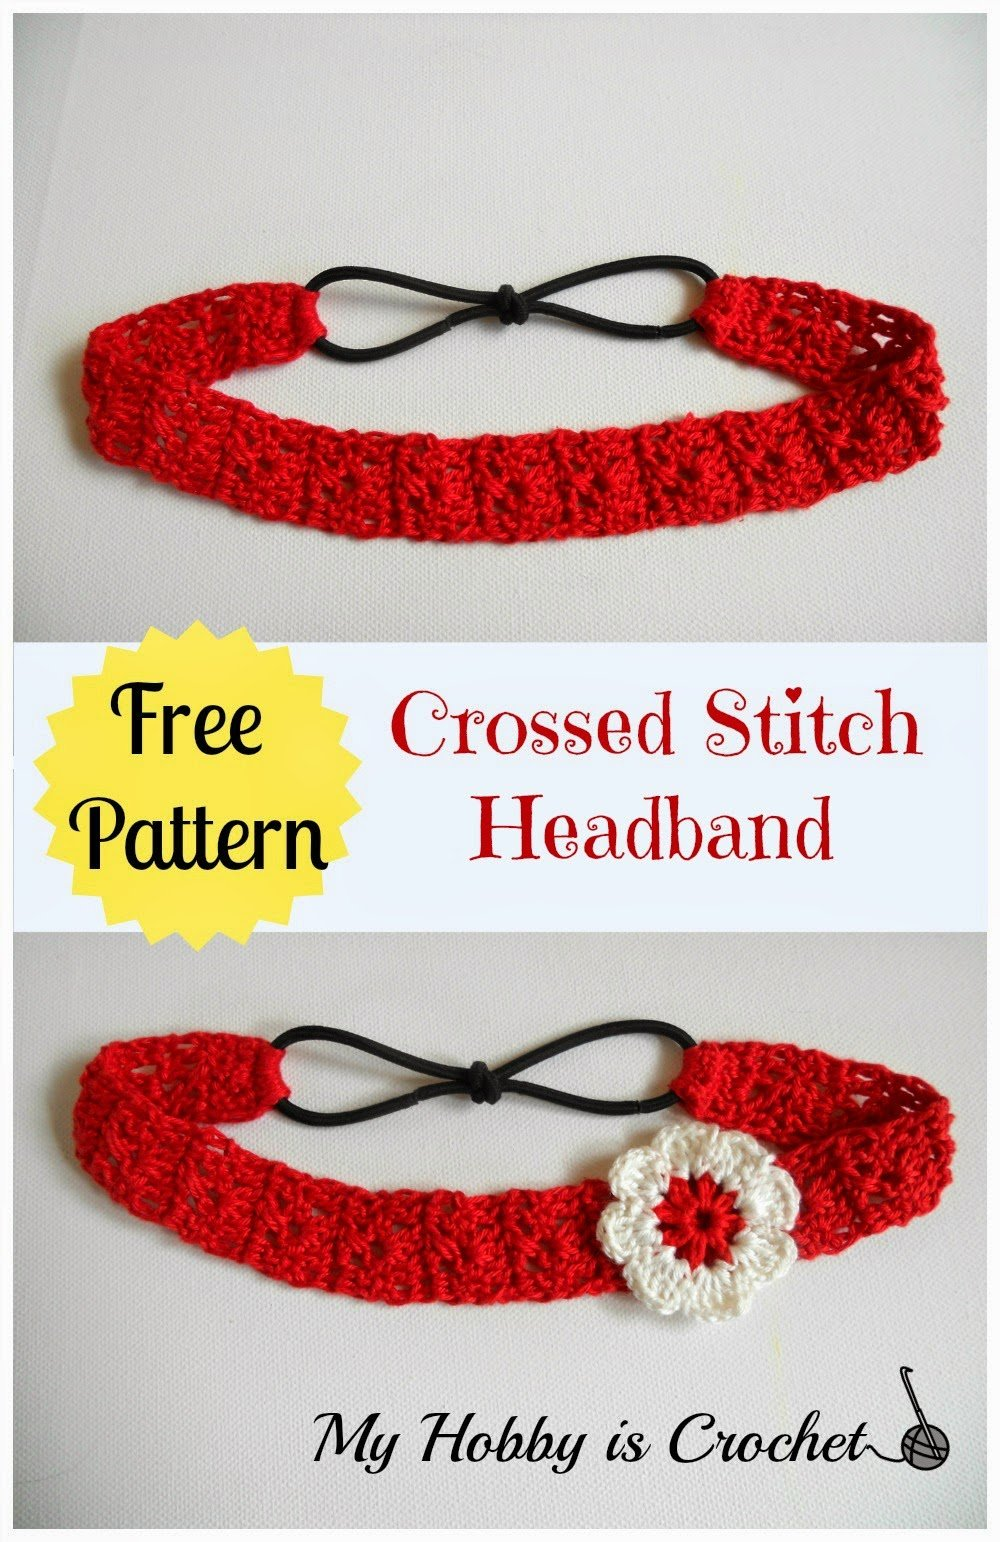 Free Crochet Pattern Headband With Flower : Crossed Stitch Headband ~ FREE Crochet Pattern